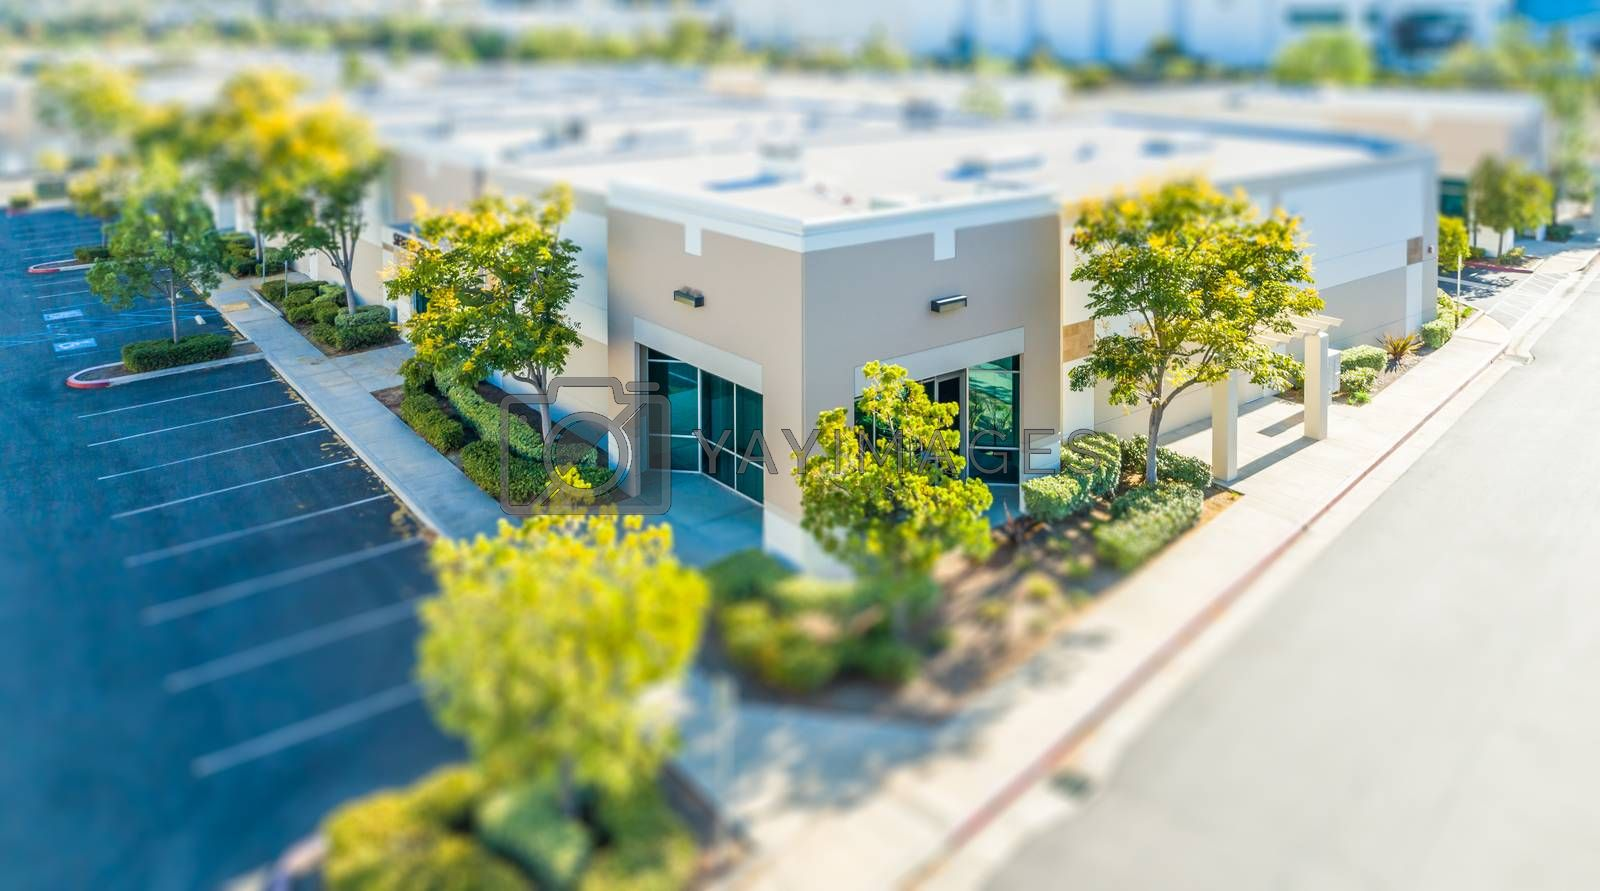 Aerial View of Commercial Buildings With Tilt-Shift Blur.